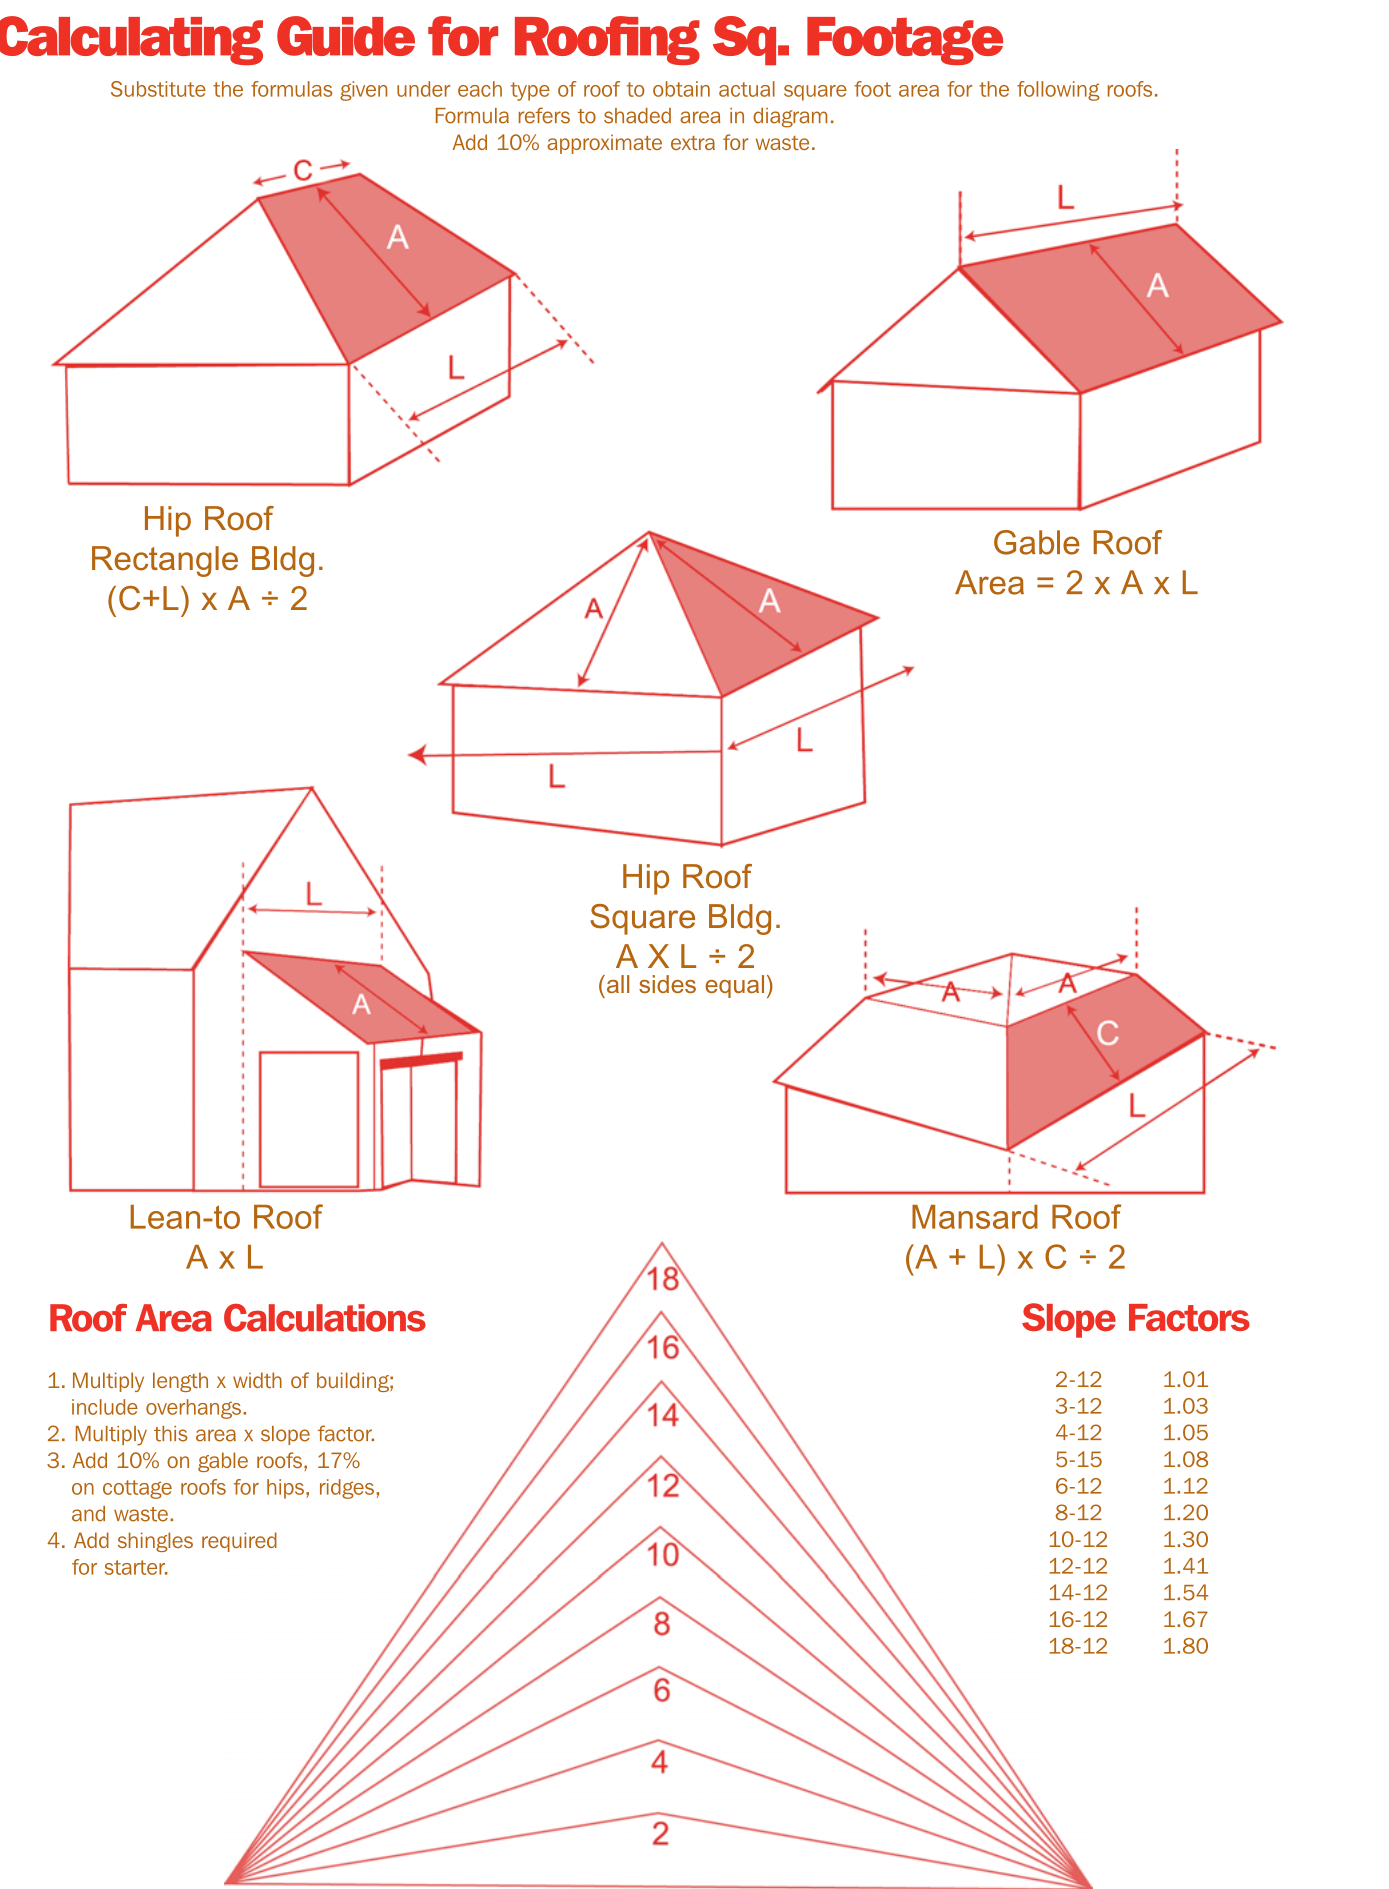 Roofing Calculator Will Estimate Your Roof Replacement Costs And Materials In A Click Of A Button Enter Your Roo Roofing Estimate Roof Cost Roofing Calculator